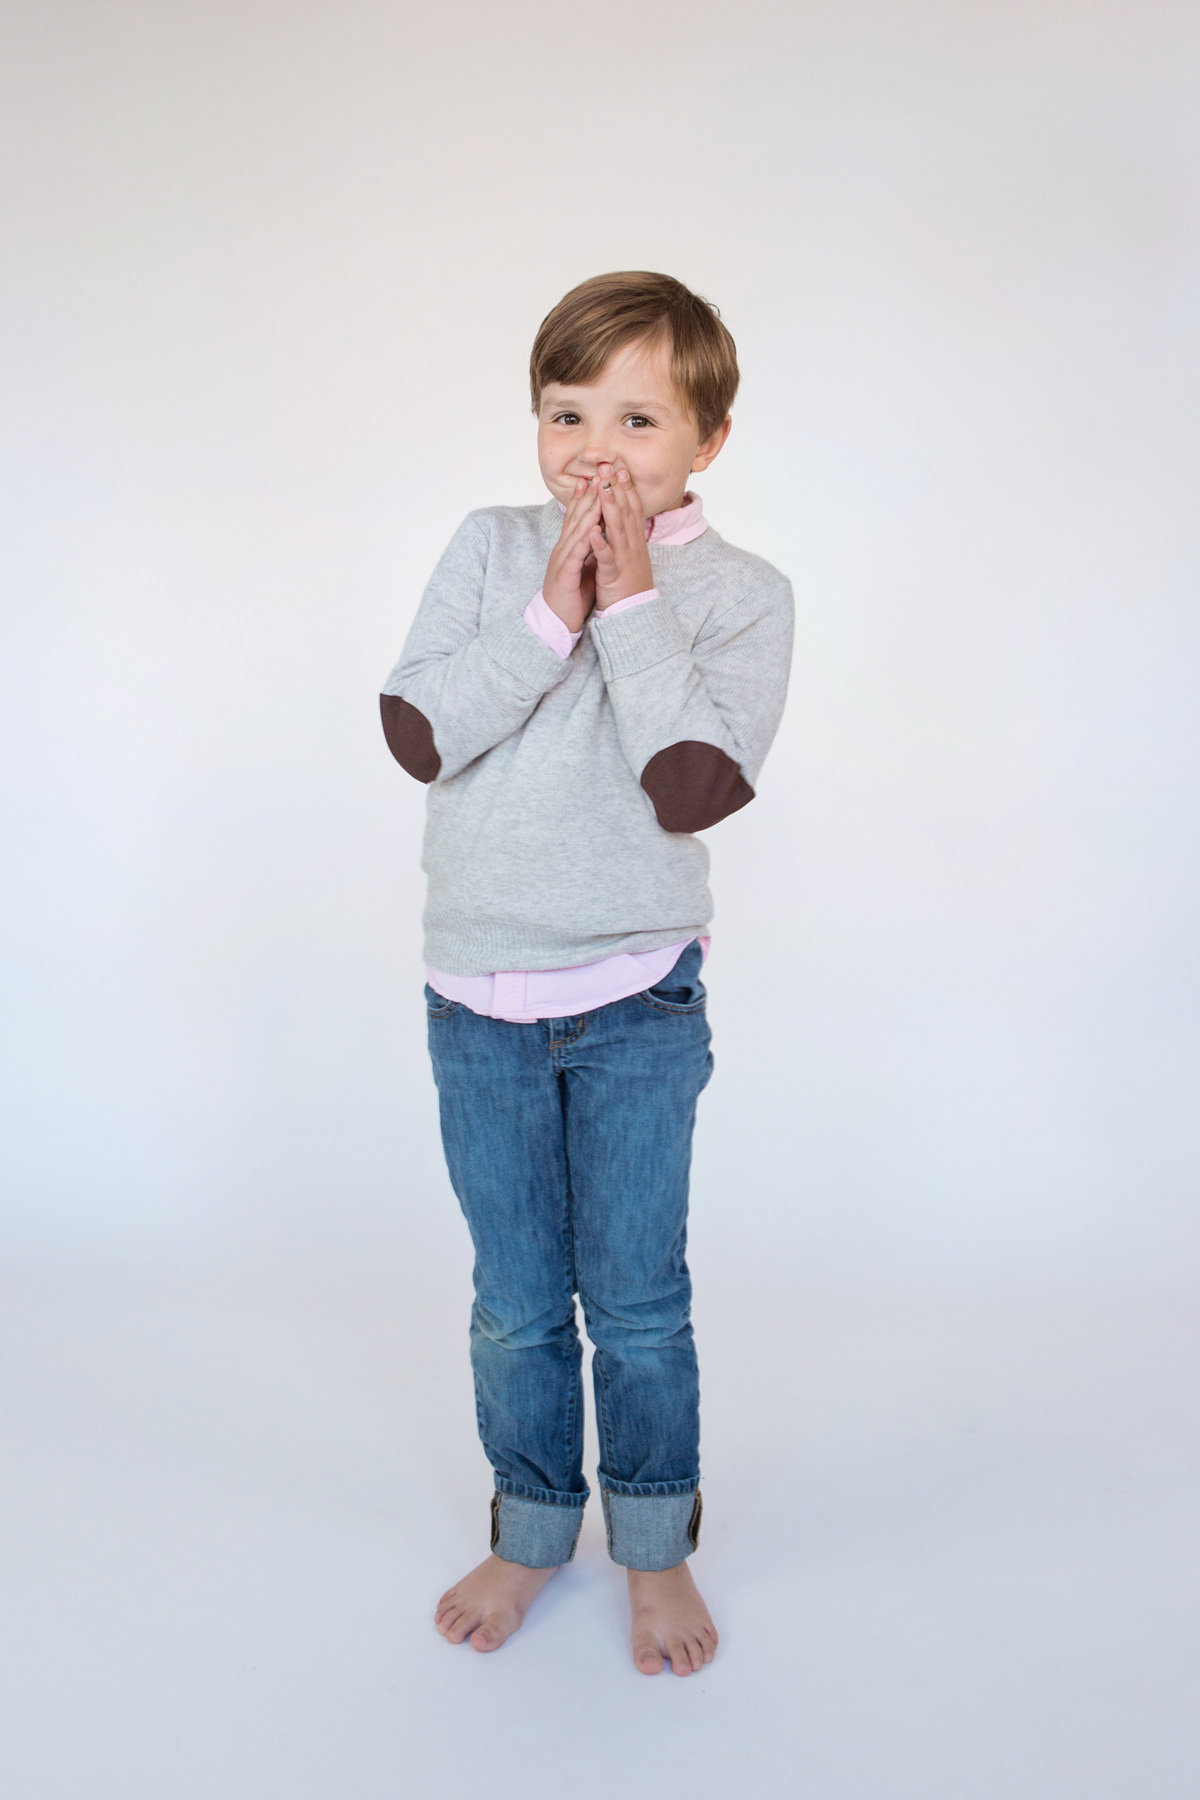 studio-child-photographer-st-louis-33Meek-48_10172015